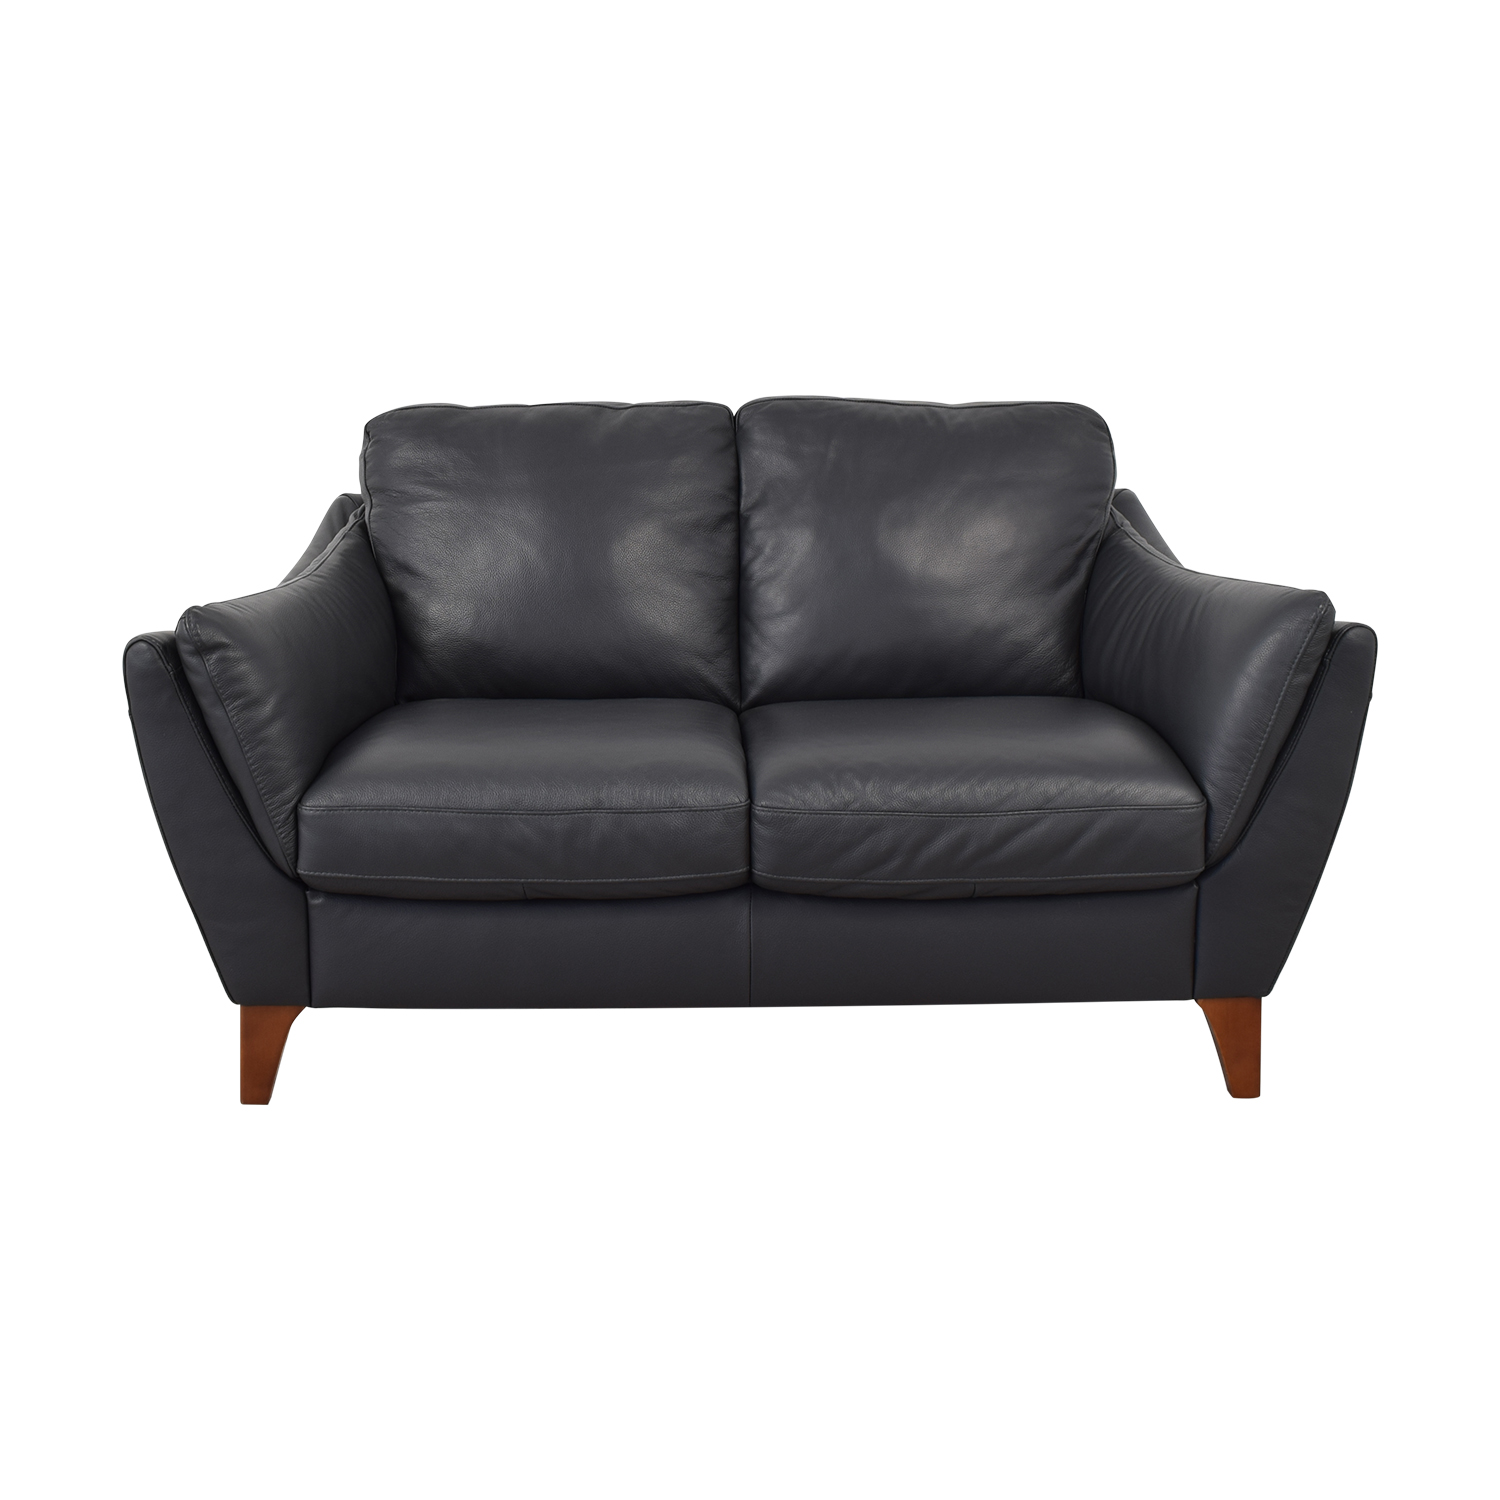 Raymour & Flanigan Raymour & Flanigan Greccio Leather Loveseat Sofas